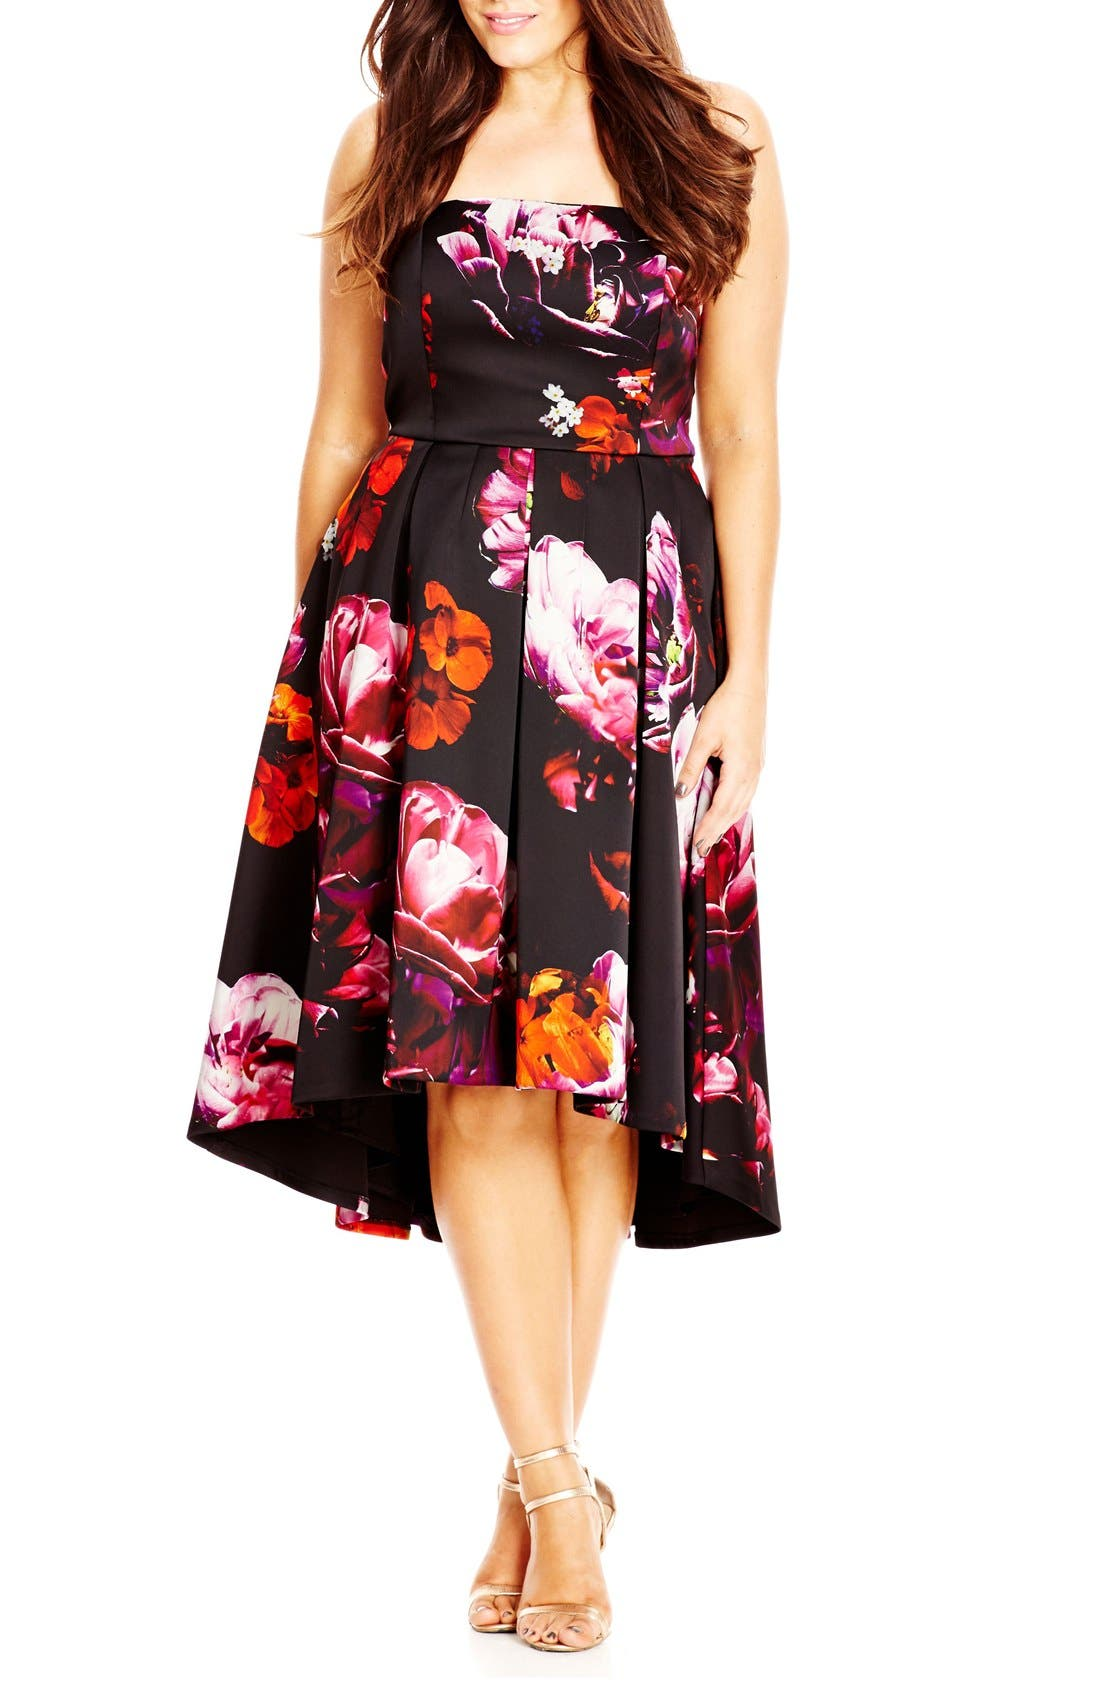 Main Image - City Chic 'Floral Magic' Floral Print Strapless High/Low Dress (Plus Size)